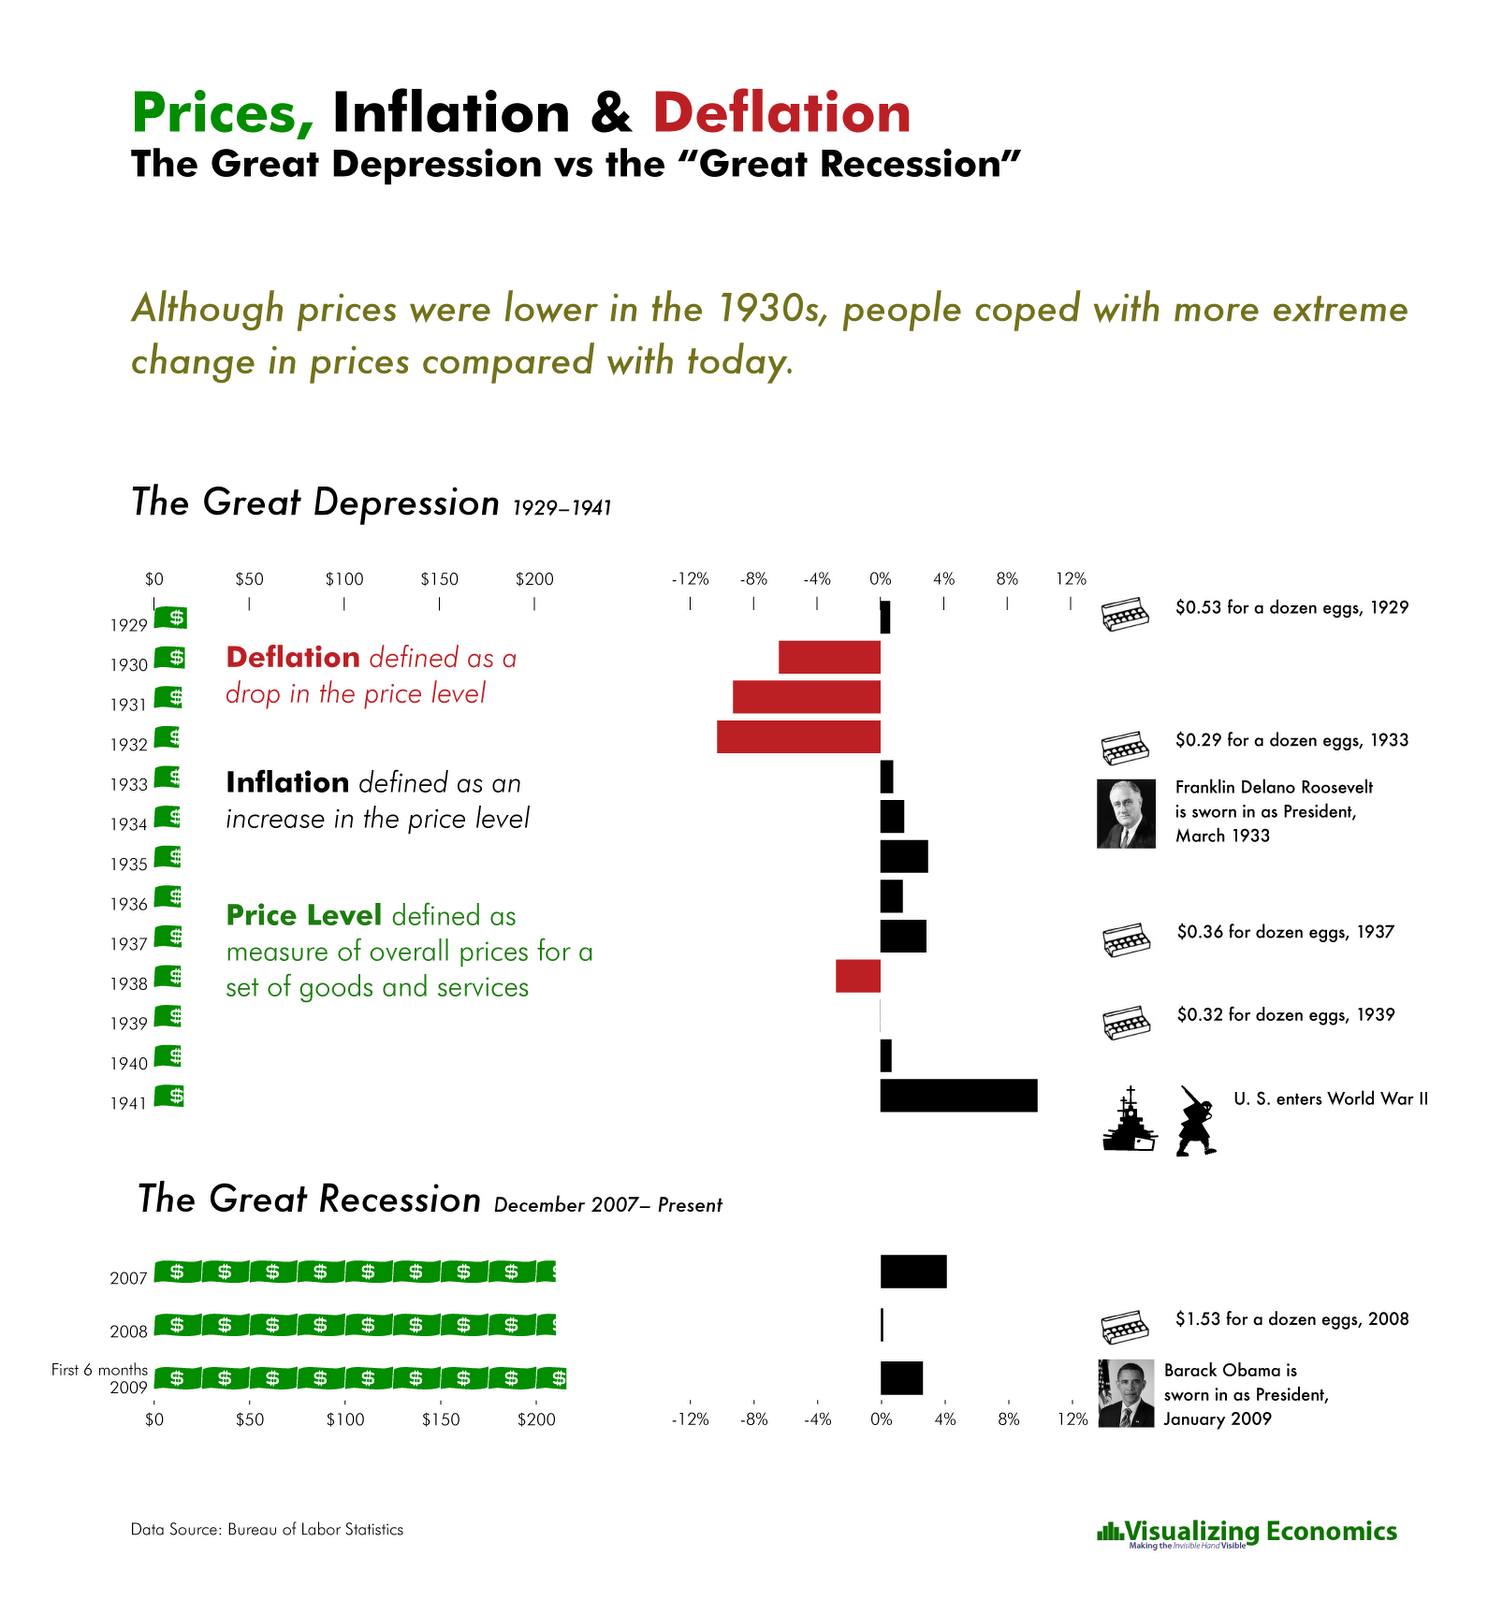 the great depression vs the great recession